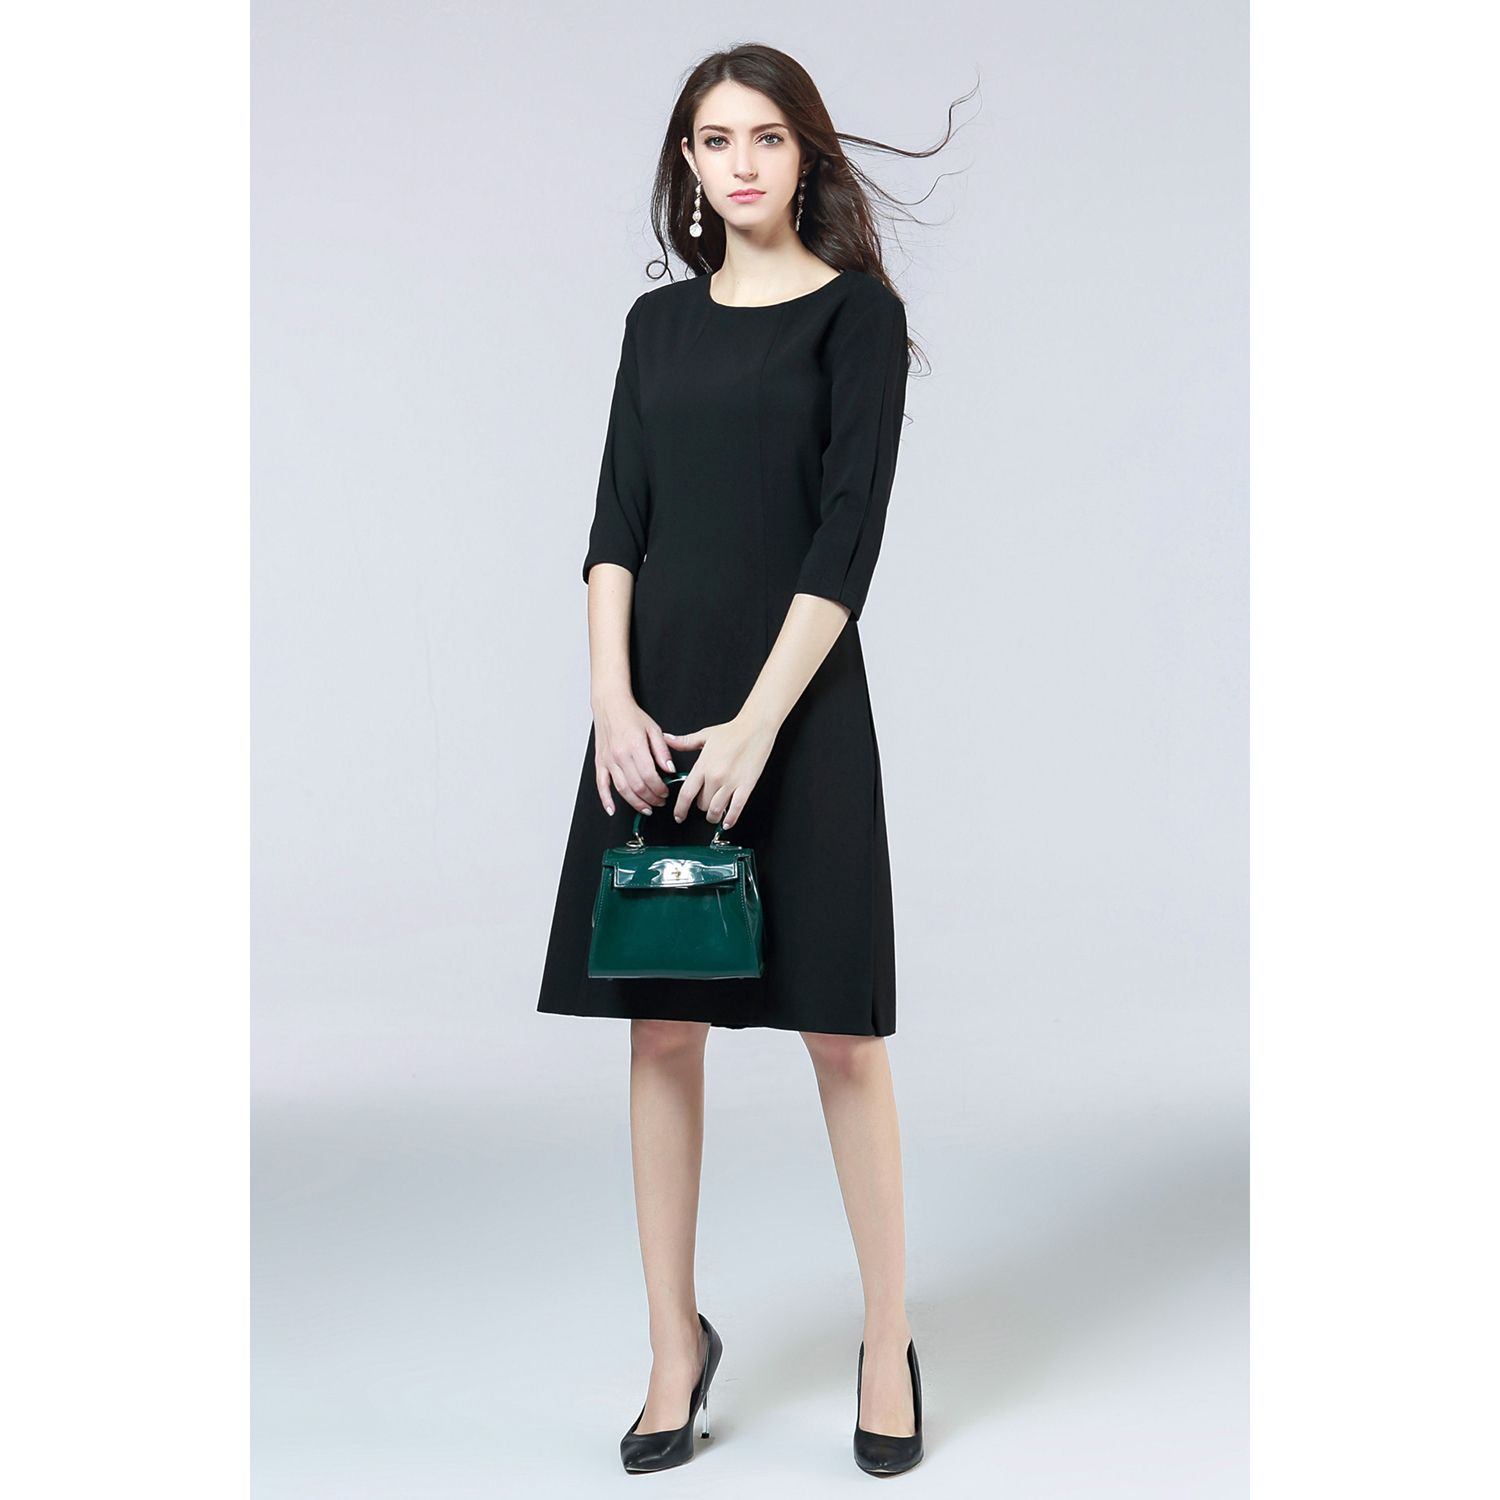 Women New Spring Autumn Half-sleeved Crew Neck European And American Dress Solid Color Temperament Dress